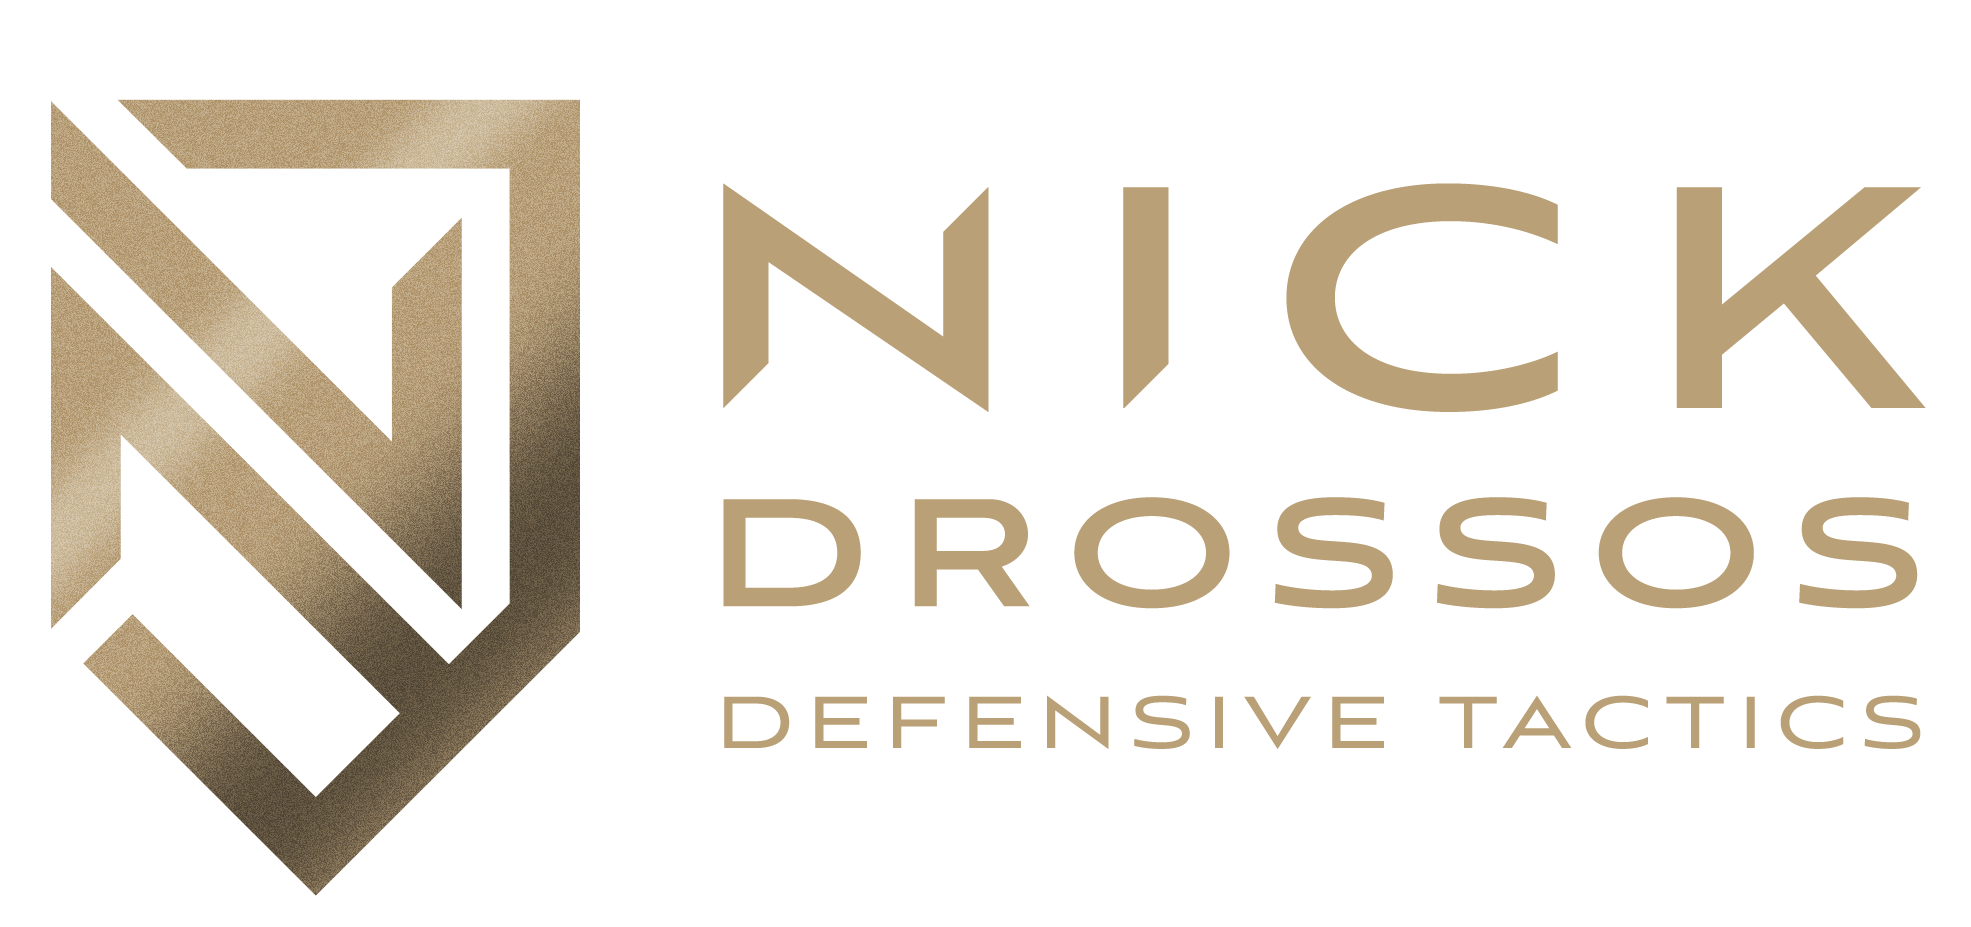 Nick Drossos Defensive Tactics Logo